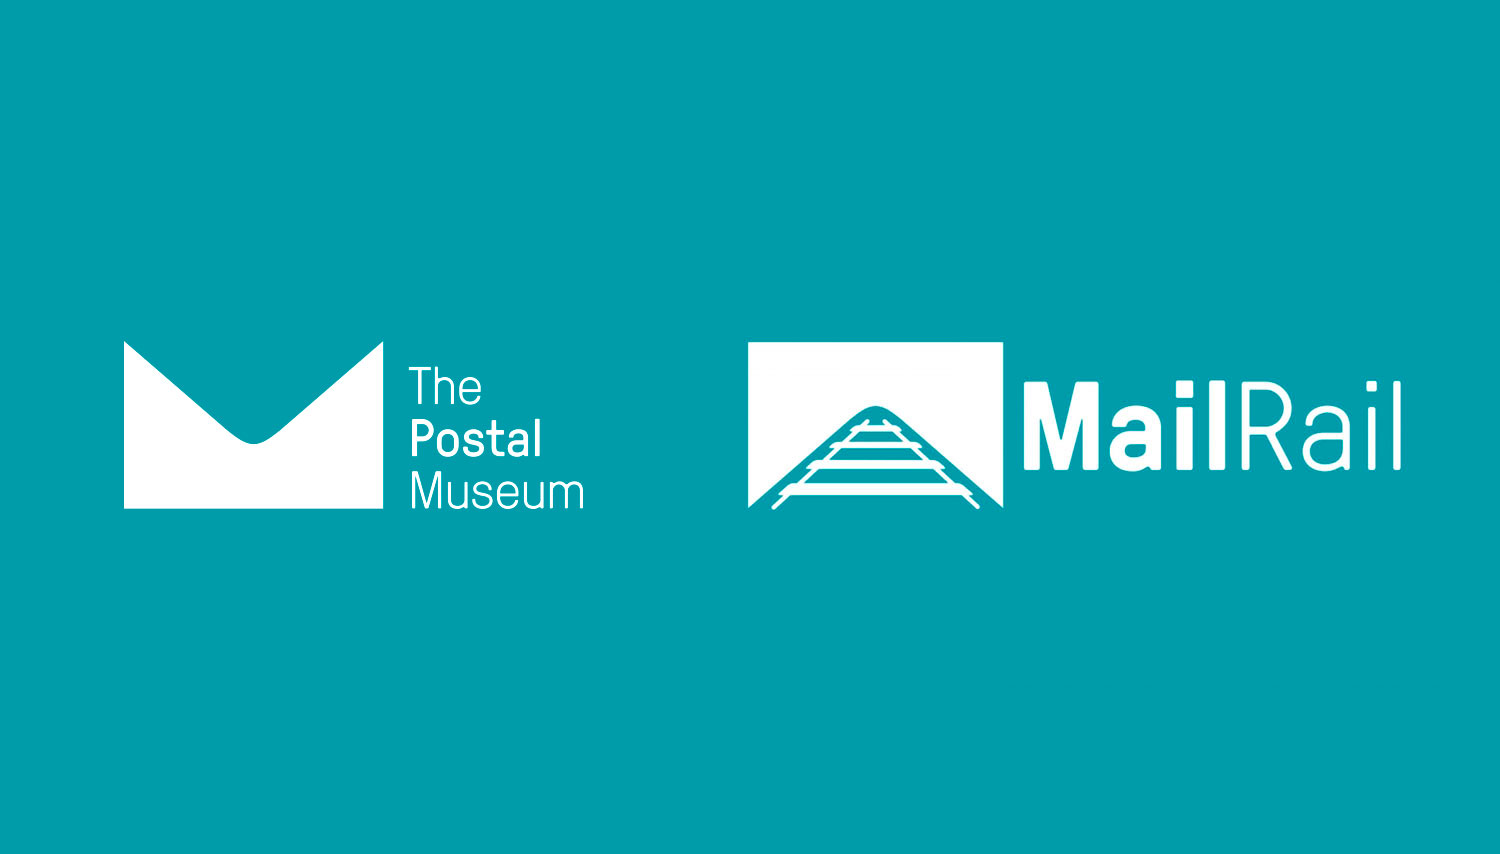 Museum branding and destination brand for The Postal Museum by Altogether Creative.